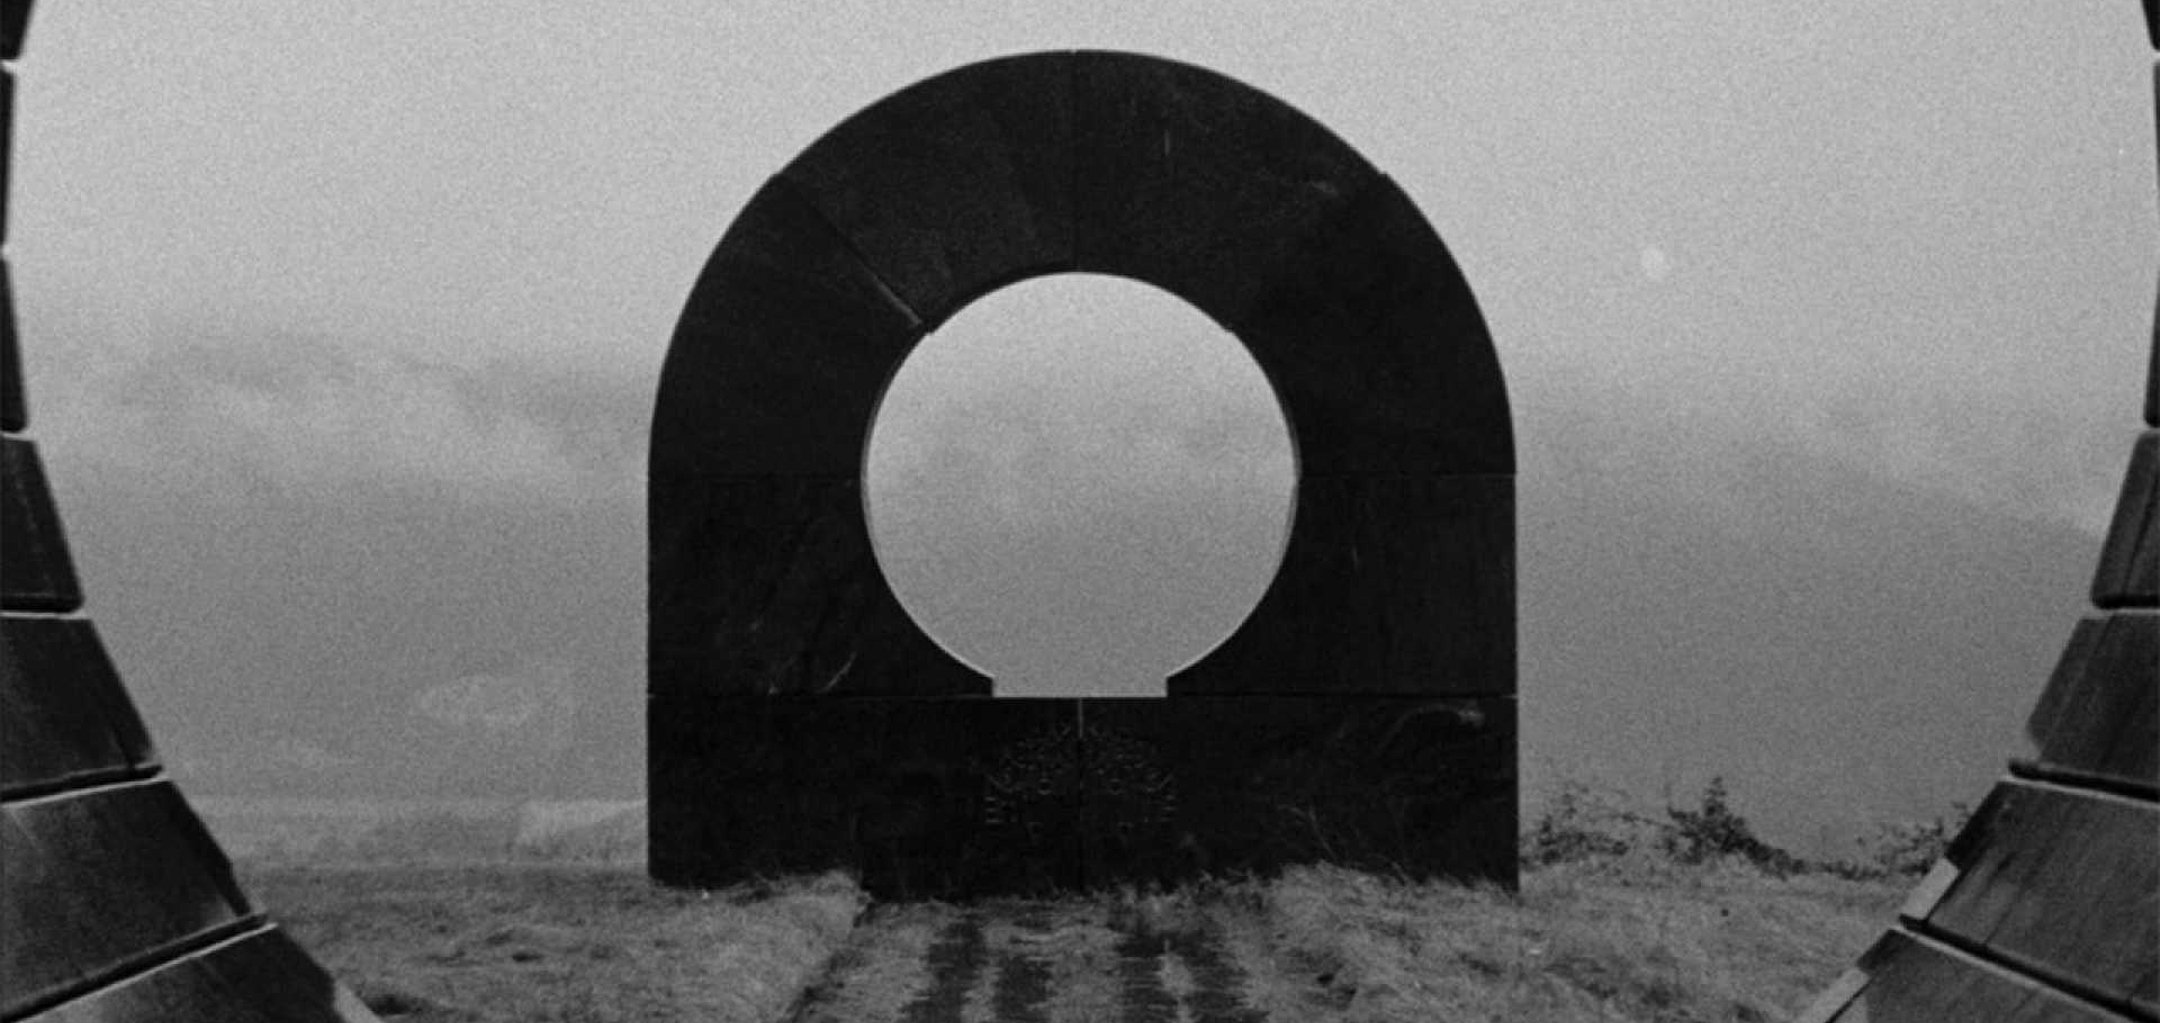 Circular arch monument in a still from 'Last and First Men' (2020)